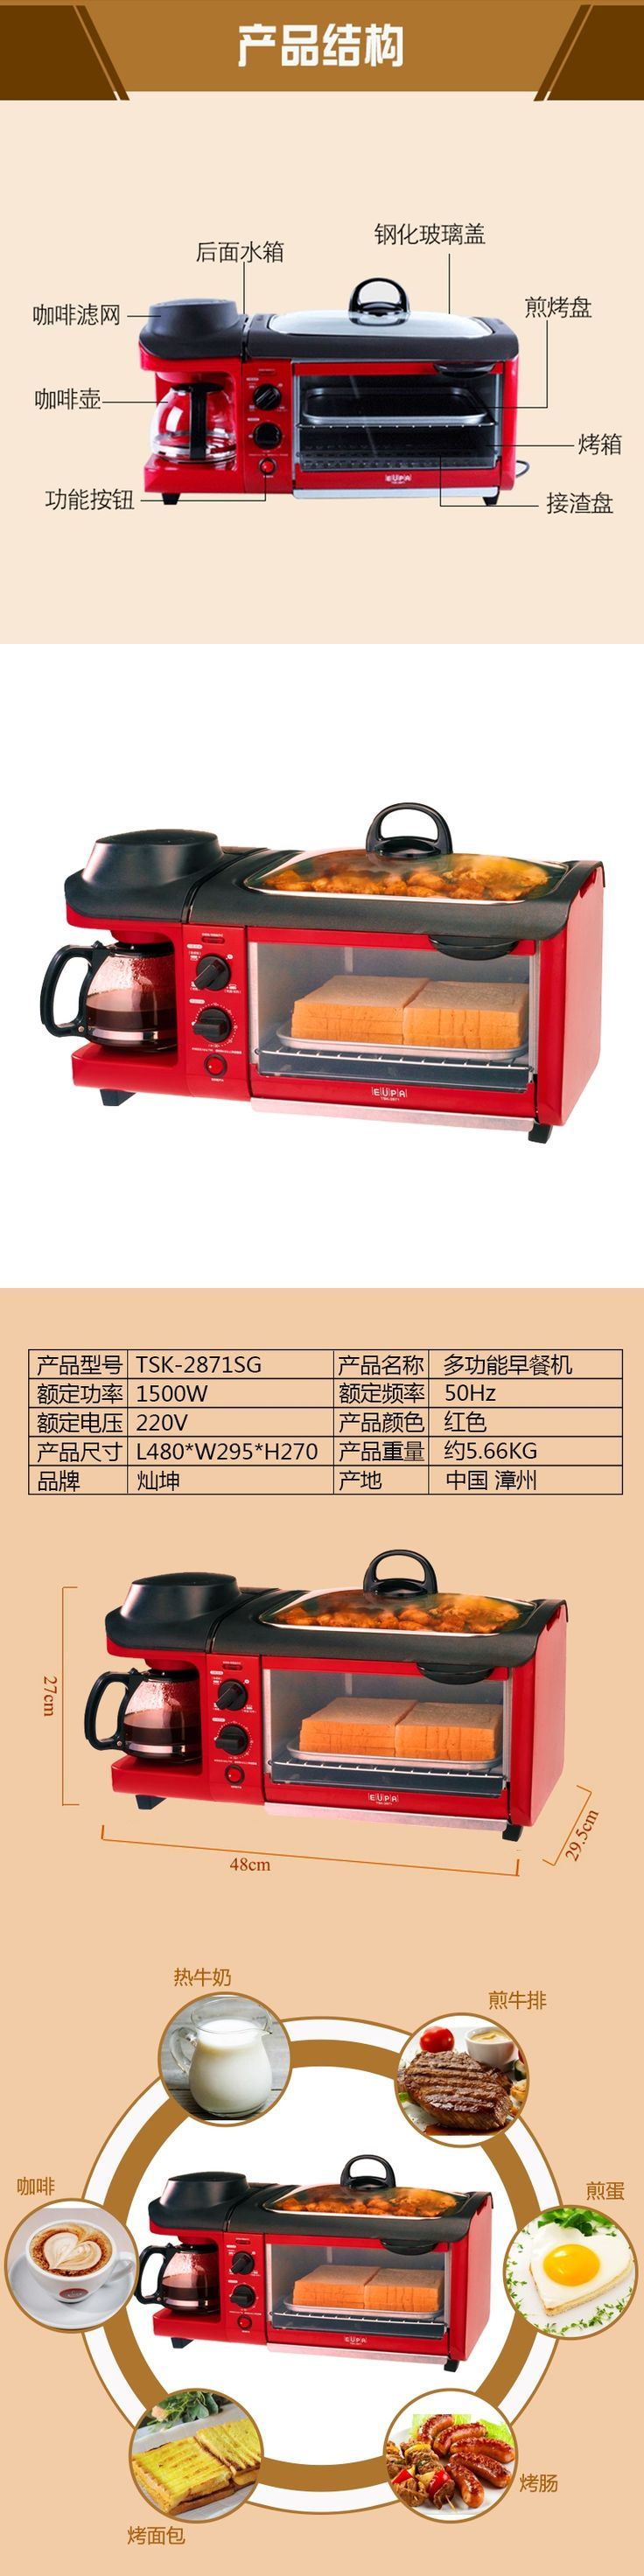 Epua Multifunction 3 In1 Breakfast Machine Toaster Oven Electric Frying Pan Coffee Maker Teppanyaki Maker 2871SG